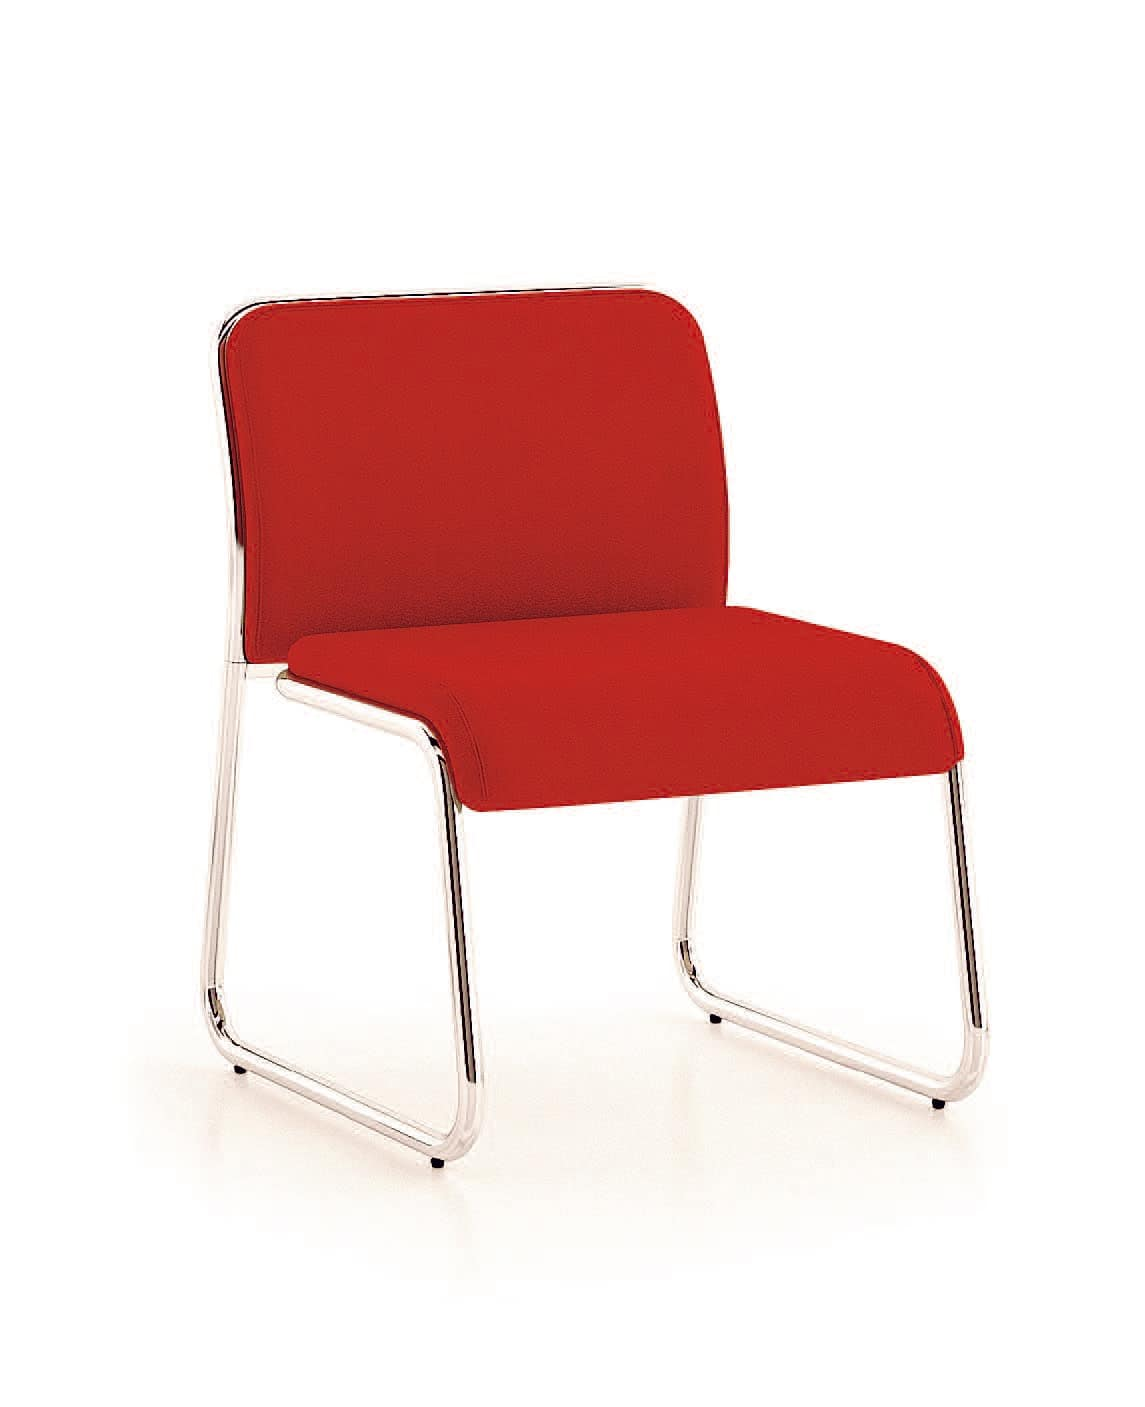 UF 183, Chair with wide seat and sled base, vintage style